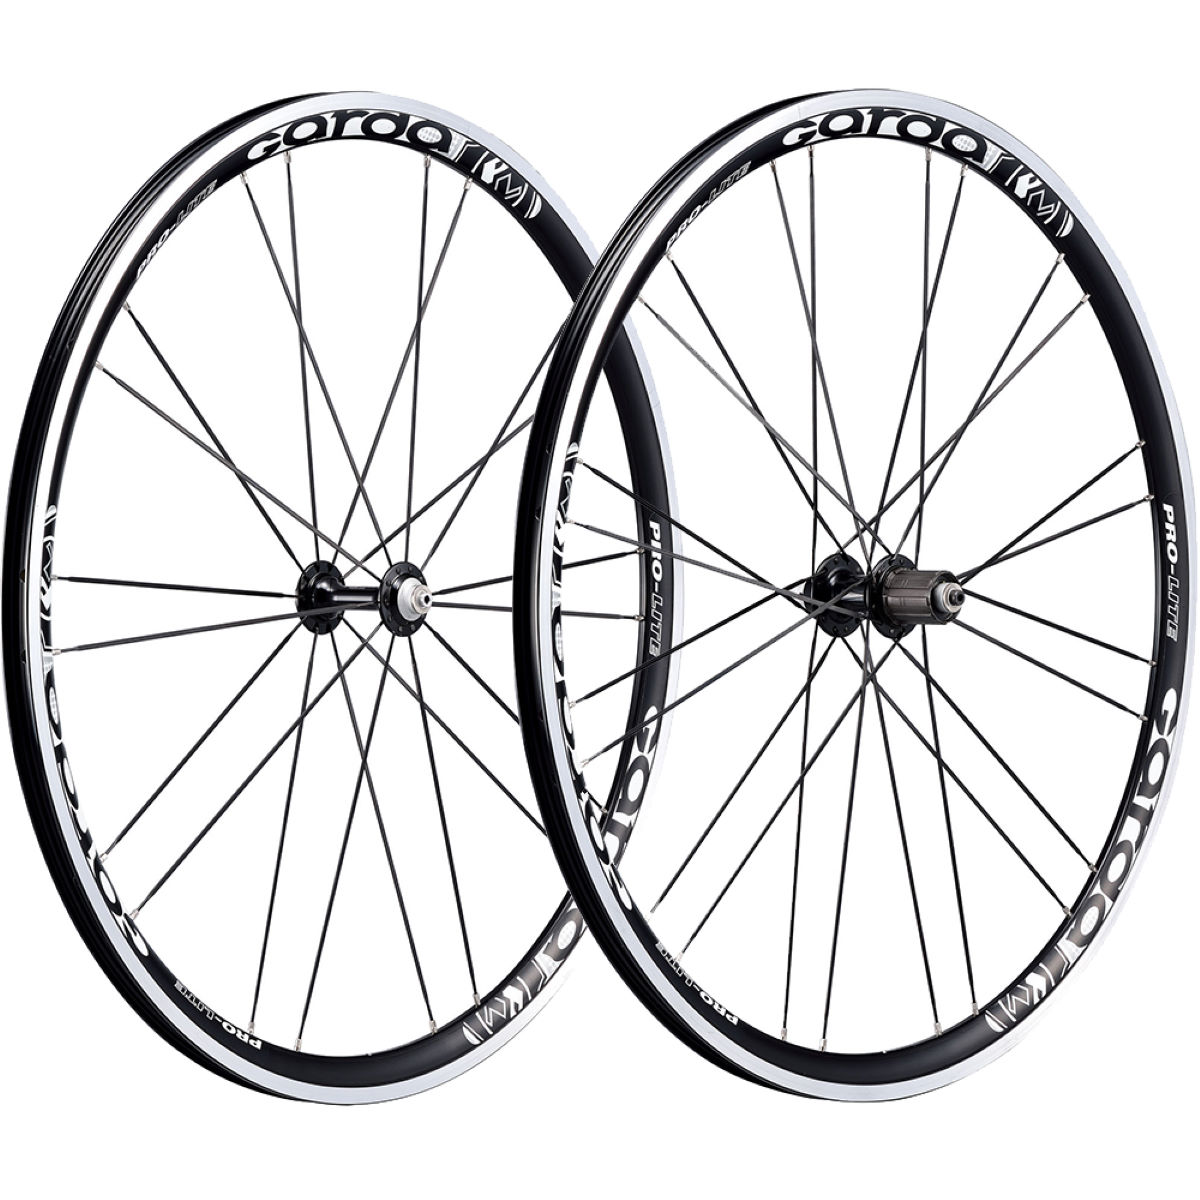 Pro Lite Garda DS 650C Alloy Clincher Wheelset Performance Wheels